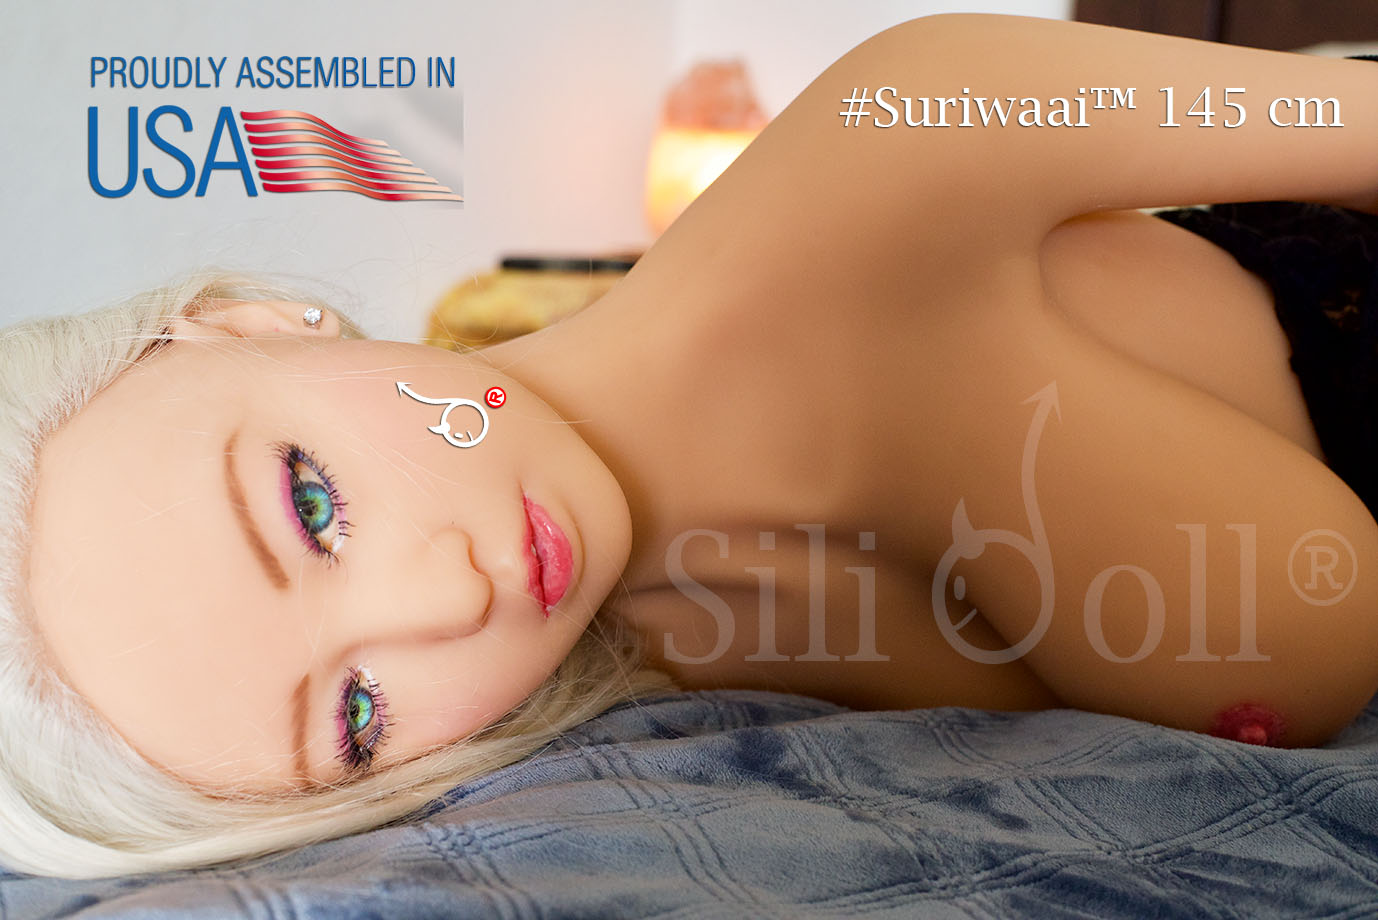 Suriwaai Master - First Sex Doll Sili Doll Assembled in the USA